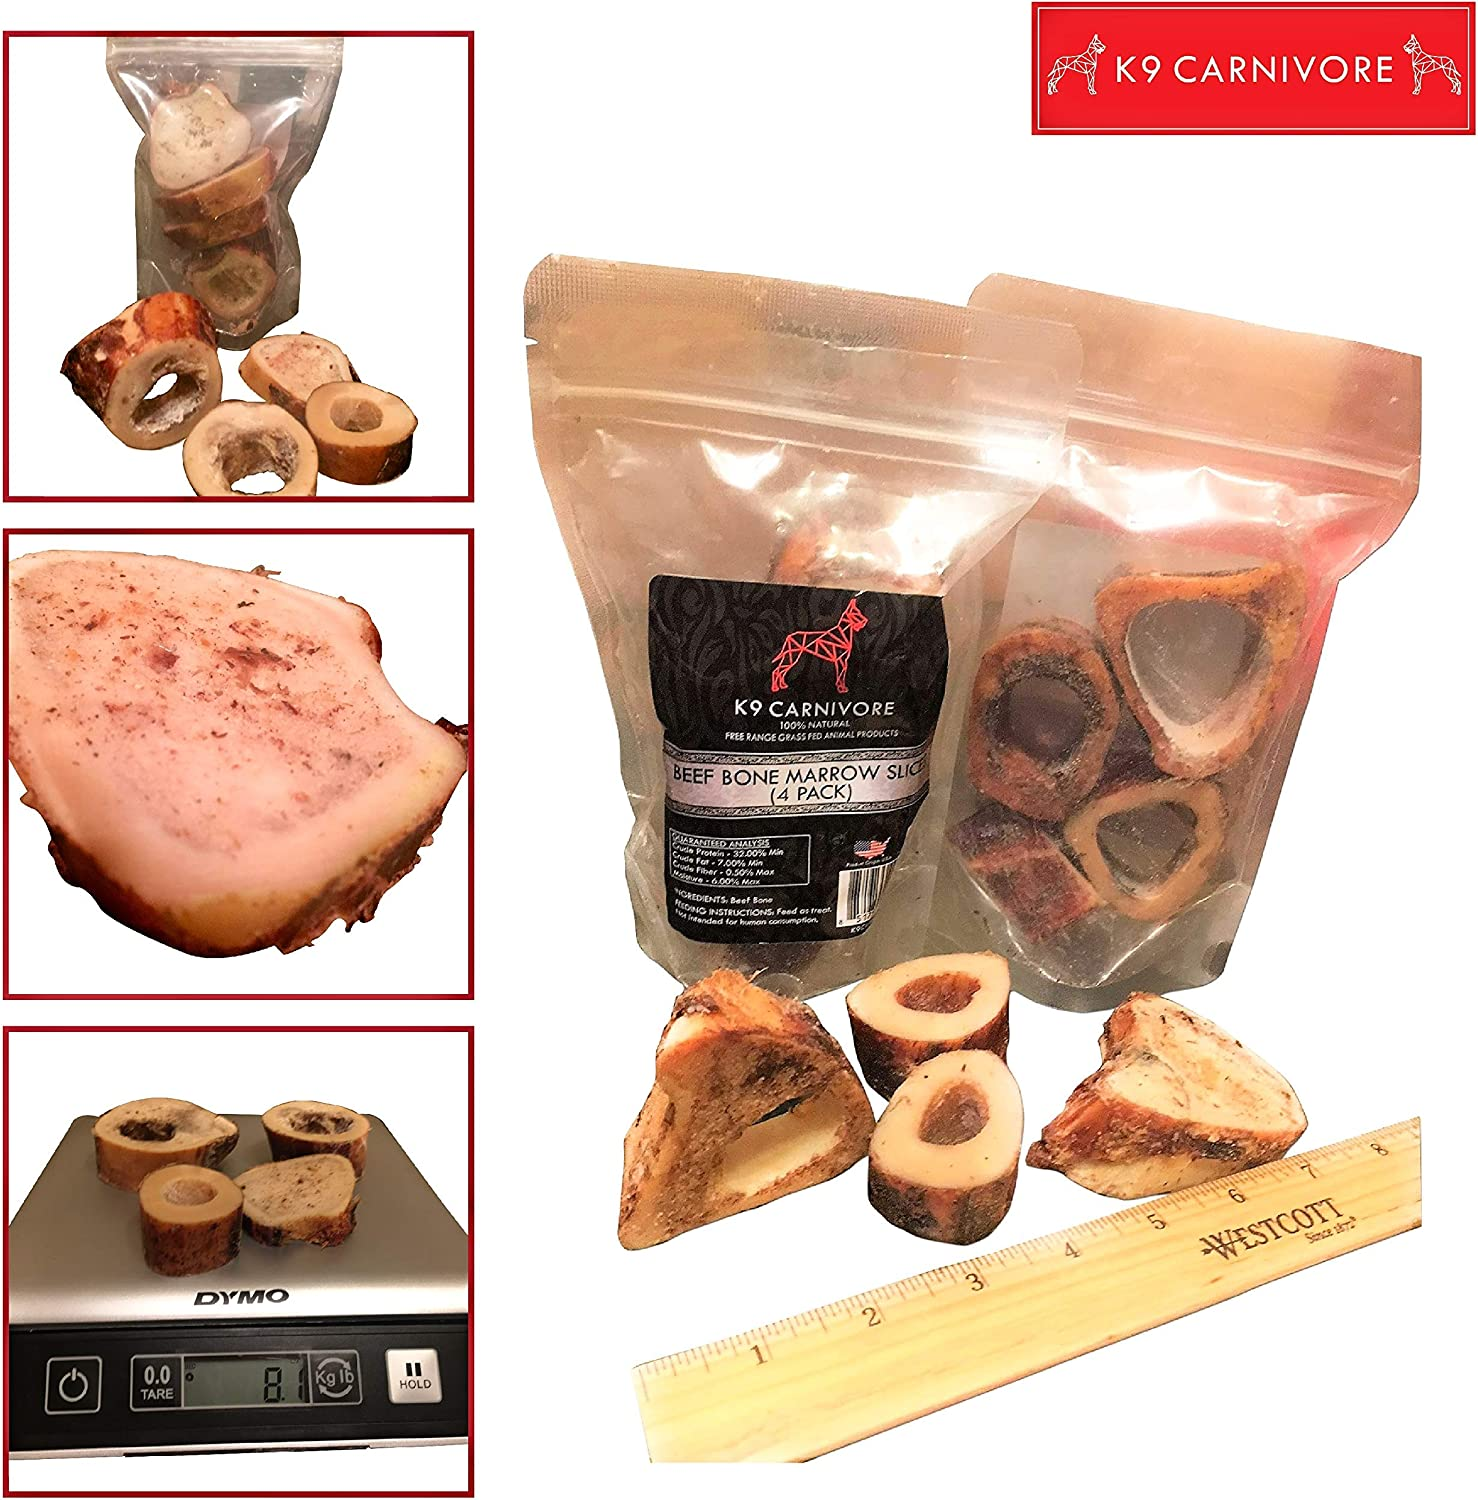 K9 CARNIVORE Smoked Marrow Beef Bone Slices (4 Pack) - Highly Digestible, Healthy, Long Lasting & Natural Dog Treat Chews Made in USA - Best for Medium and Large Breed Dogs